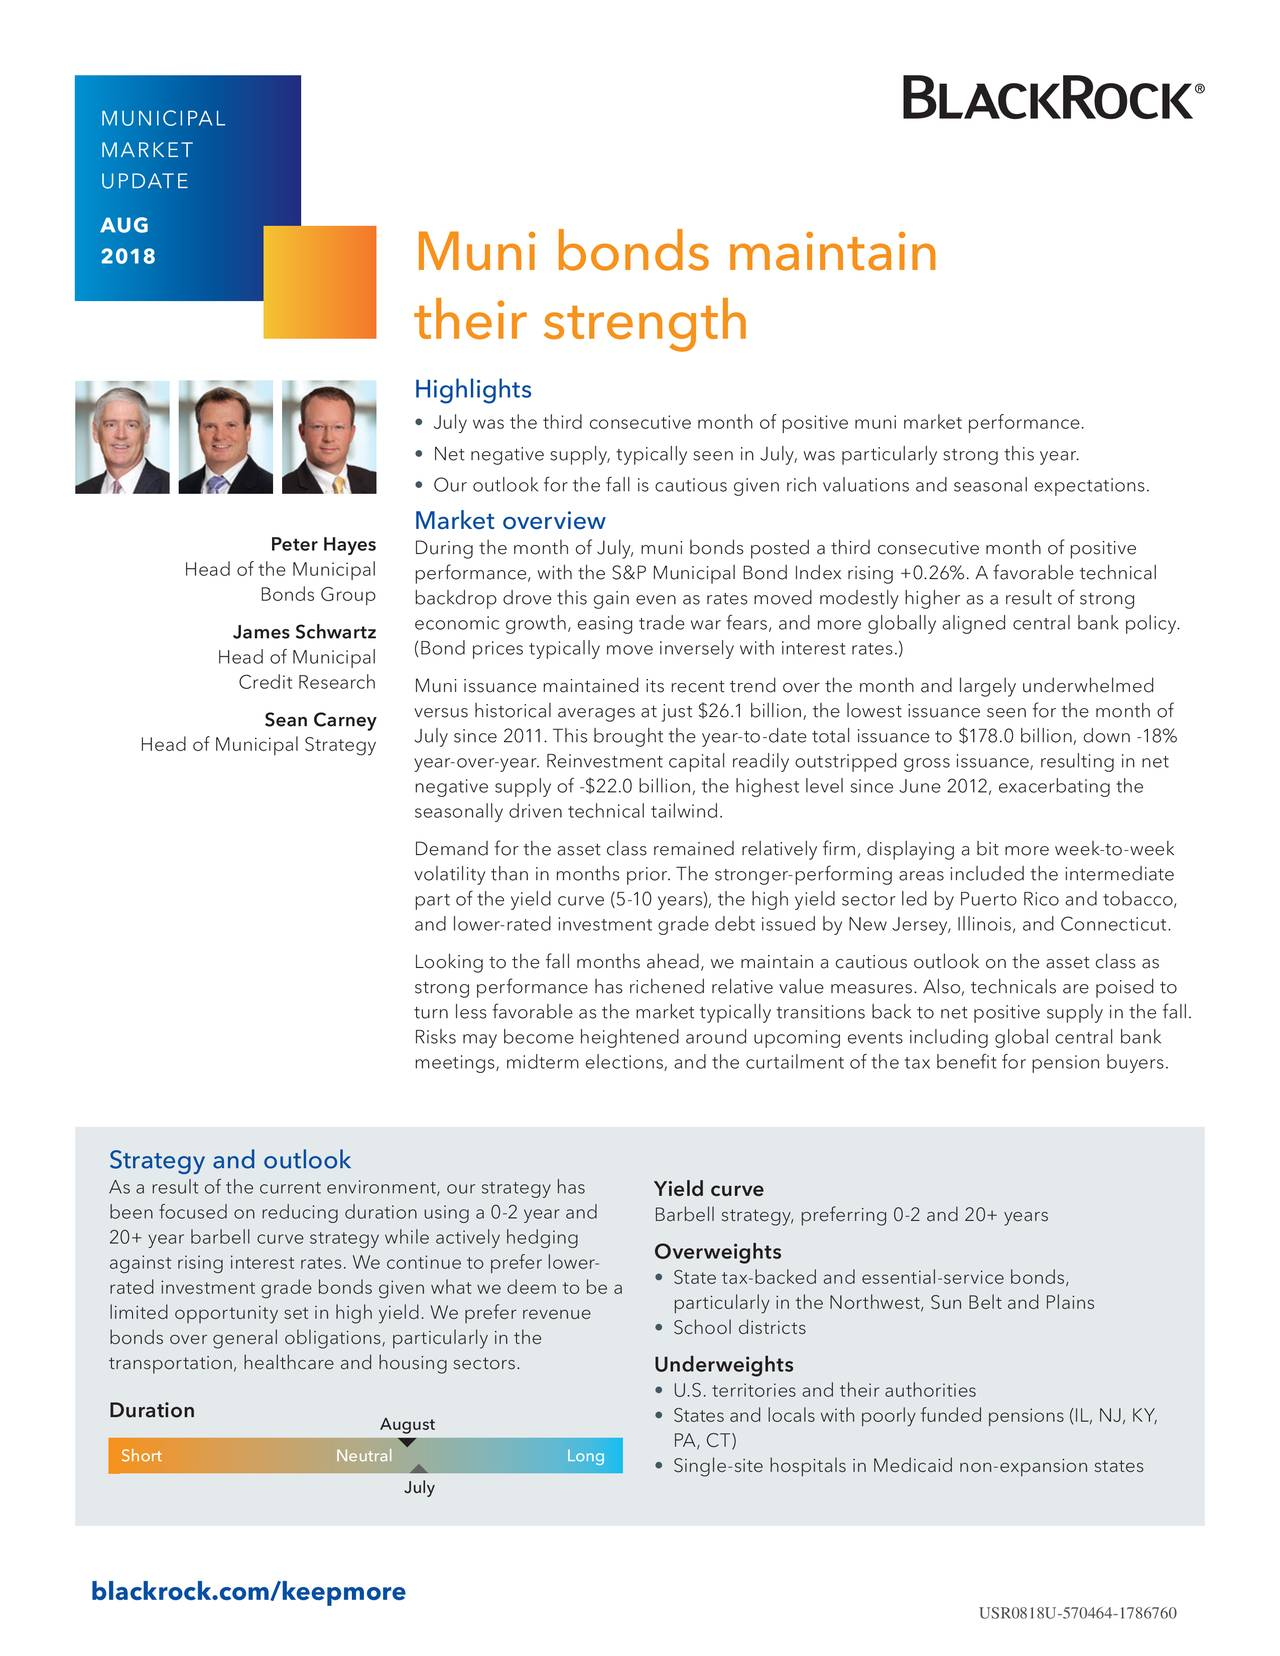 MARKET UPDATE AUG 2018 Muni bonds maintain their strength Highlights • July was the third consecutive month of positive muni market performance. • Net negative supply, typically seen in July, was particularly strong this year. • Our outlook for the fall is cautious given rich valuations and seasonal expectations. Market overview Peter Hayes During the month of July, muni bonds posted a third consecutive month of positive Head of the Municipal performance, with the S&P Municipal Bond Index rising +0.26%. A favorable technical Bonds Group backdrop drove this gain even as rates moved modestly higher as a result of strong James Schwartz economic growth, easing trade war fears, and more globally aligned central bank policy. Head of Municipal (Bond prices typically move inversely with interest rates.) Credit Research Muni issuance maintained its recent trend over the month and largely underwhelmed versus historical averages at just $26.1 billion, the lowest issuance seen for the month of Sean Carney July since 2011. This brought the year-to-date total issuance to $178.0 billion, down -18% Head of Municipal Strategy year-over-year. Reinvestment capital readily outstripped gross issuance, resulting in net negative supply of -$22.0 billion, the highest level since June 2012, exacerbating the seasonally driven technical tailwind. Demand for the asset class remained relatively firm, displaying a bit more week-to-week volatility than in months prior. The stronger-performing areas included the intermediate part of the yield curve (5-10 years), the high yield sector led by Puerto Rico and tobacco, and lower-rated investment grade debt issued by New Jersey, Illinois, and Connecticut. Looking to the fall months ahead, we maintain a cautious outlook on the asset class as strong performance has richened relative value measures. Also, technicals are poised to turn less favorable as the market typically transitions back to net positive supply in the fall. Risks may become heightened around upcoming events including global central bank meetings, midterm elections, and the curtailment of the tax benefit for pension buyers. Strategy and outlook As a result of the current environment, our strategy has Yield curve been focused on reducing duration using a 0-2 year and Barbell strategy, preferring 0-2 and 20+ years 20+ year barbell curve strategy while actively hedging against rising interest rates. We continue to prefer lower-verweights rated investment grade bonds given what we deem to be a • State tax-backed and essential-service bonds, particularly in the Northwest, Sun Belt and Plains limited opportunity set in high yield. We prefer revenue • School districts bonds over general obligations, particularly in the transportation, healthcare and housing sectors. Underweights • U.S. territories and their authorities Duration August • States and locals with poorly funded pensions (IL, NJ, KY, Short Neutral ▯ Long PA, CT) • Single-site hospitals in Medicaid non-expansion states July blackrock.com/keepmore USR0818U-570464-1786760